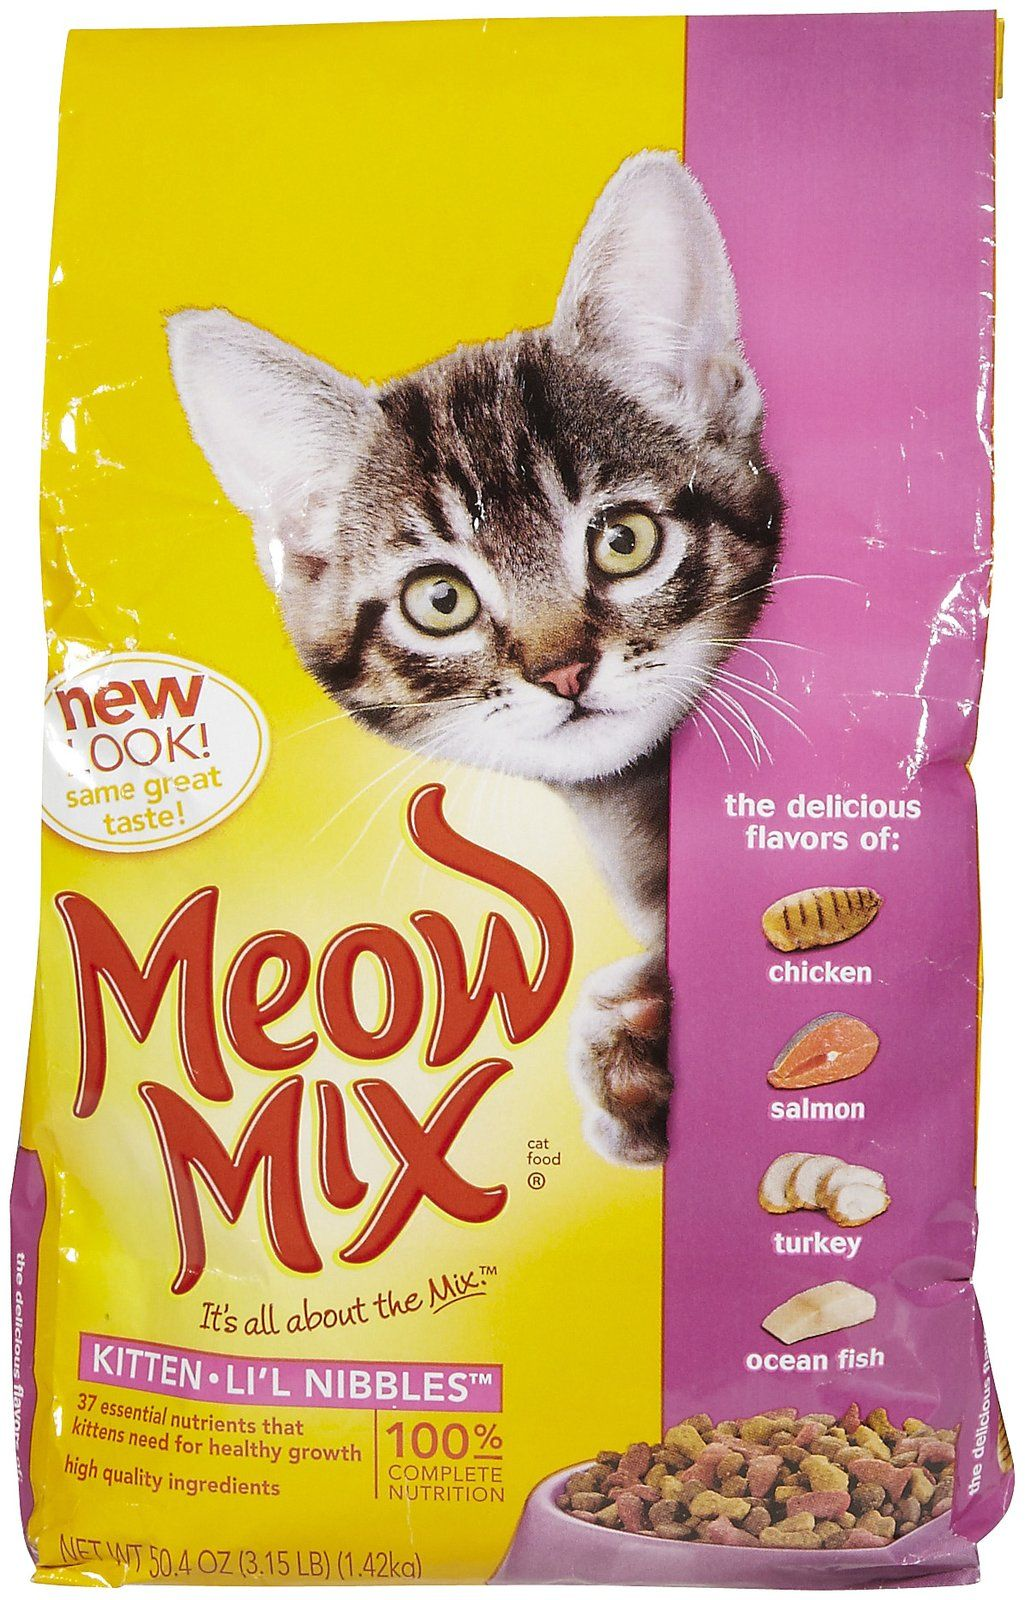 Meow Mix Kitten Li L Nibbles Provides 100 Complete Nutrition With 37 Essential Nutrients That Growing Kittens Need Salmon Cat Kitten Cat Food